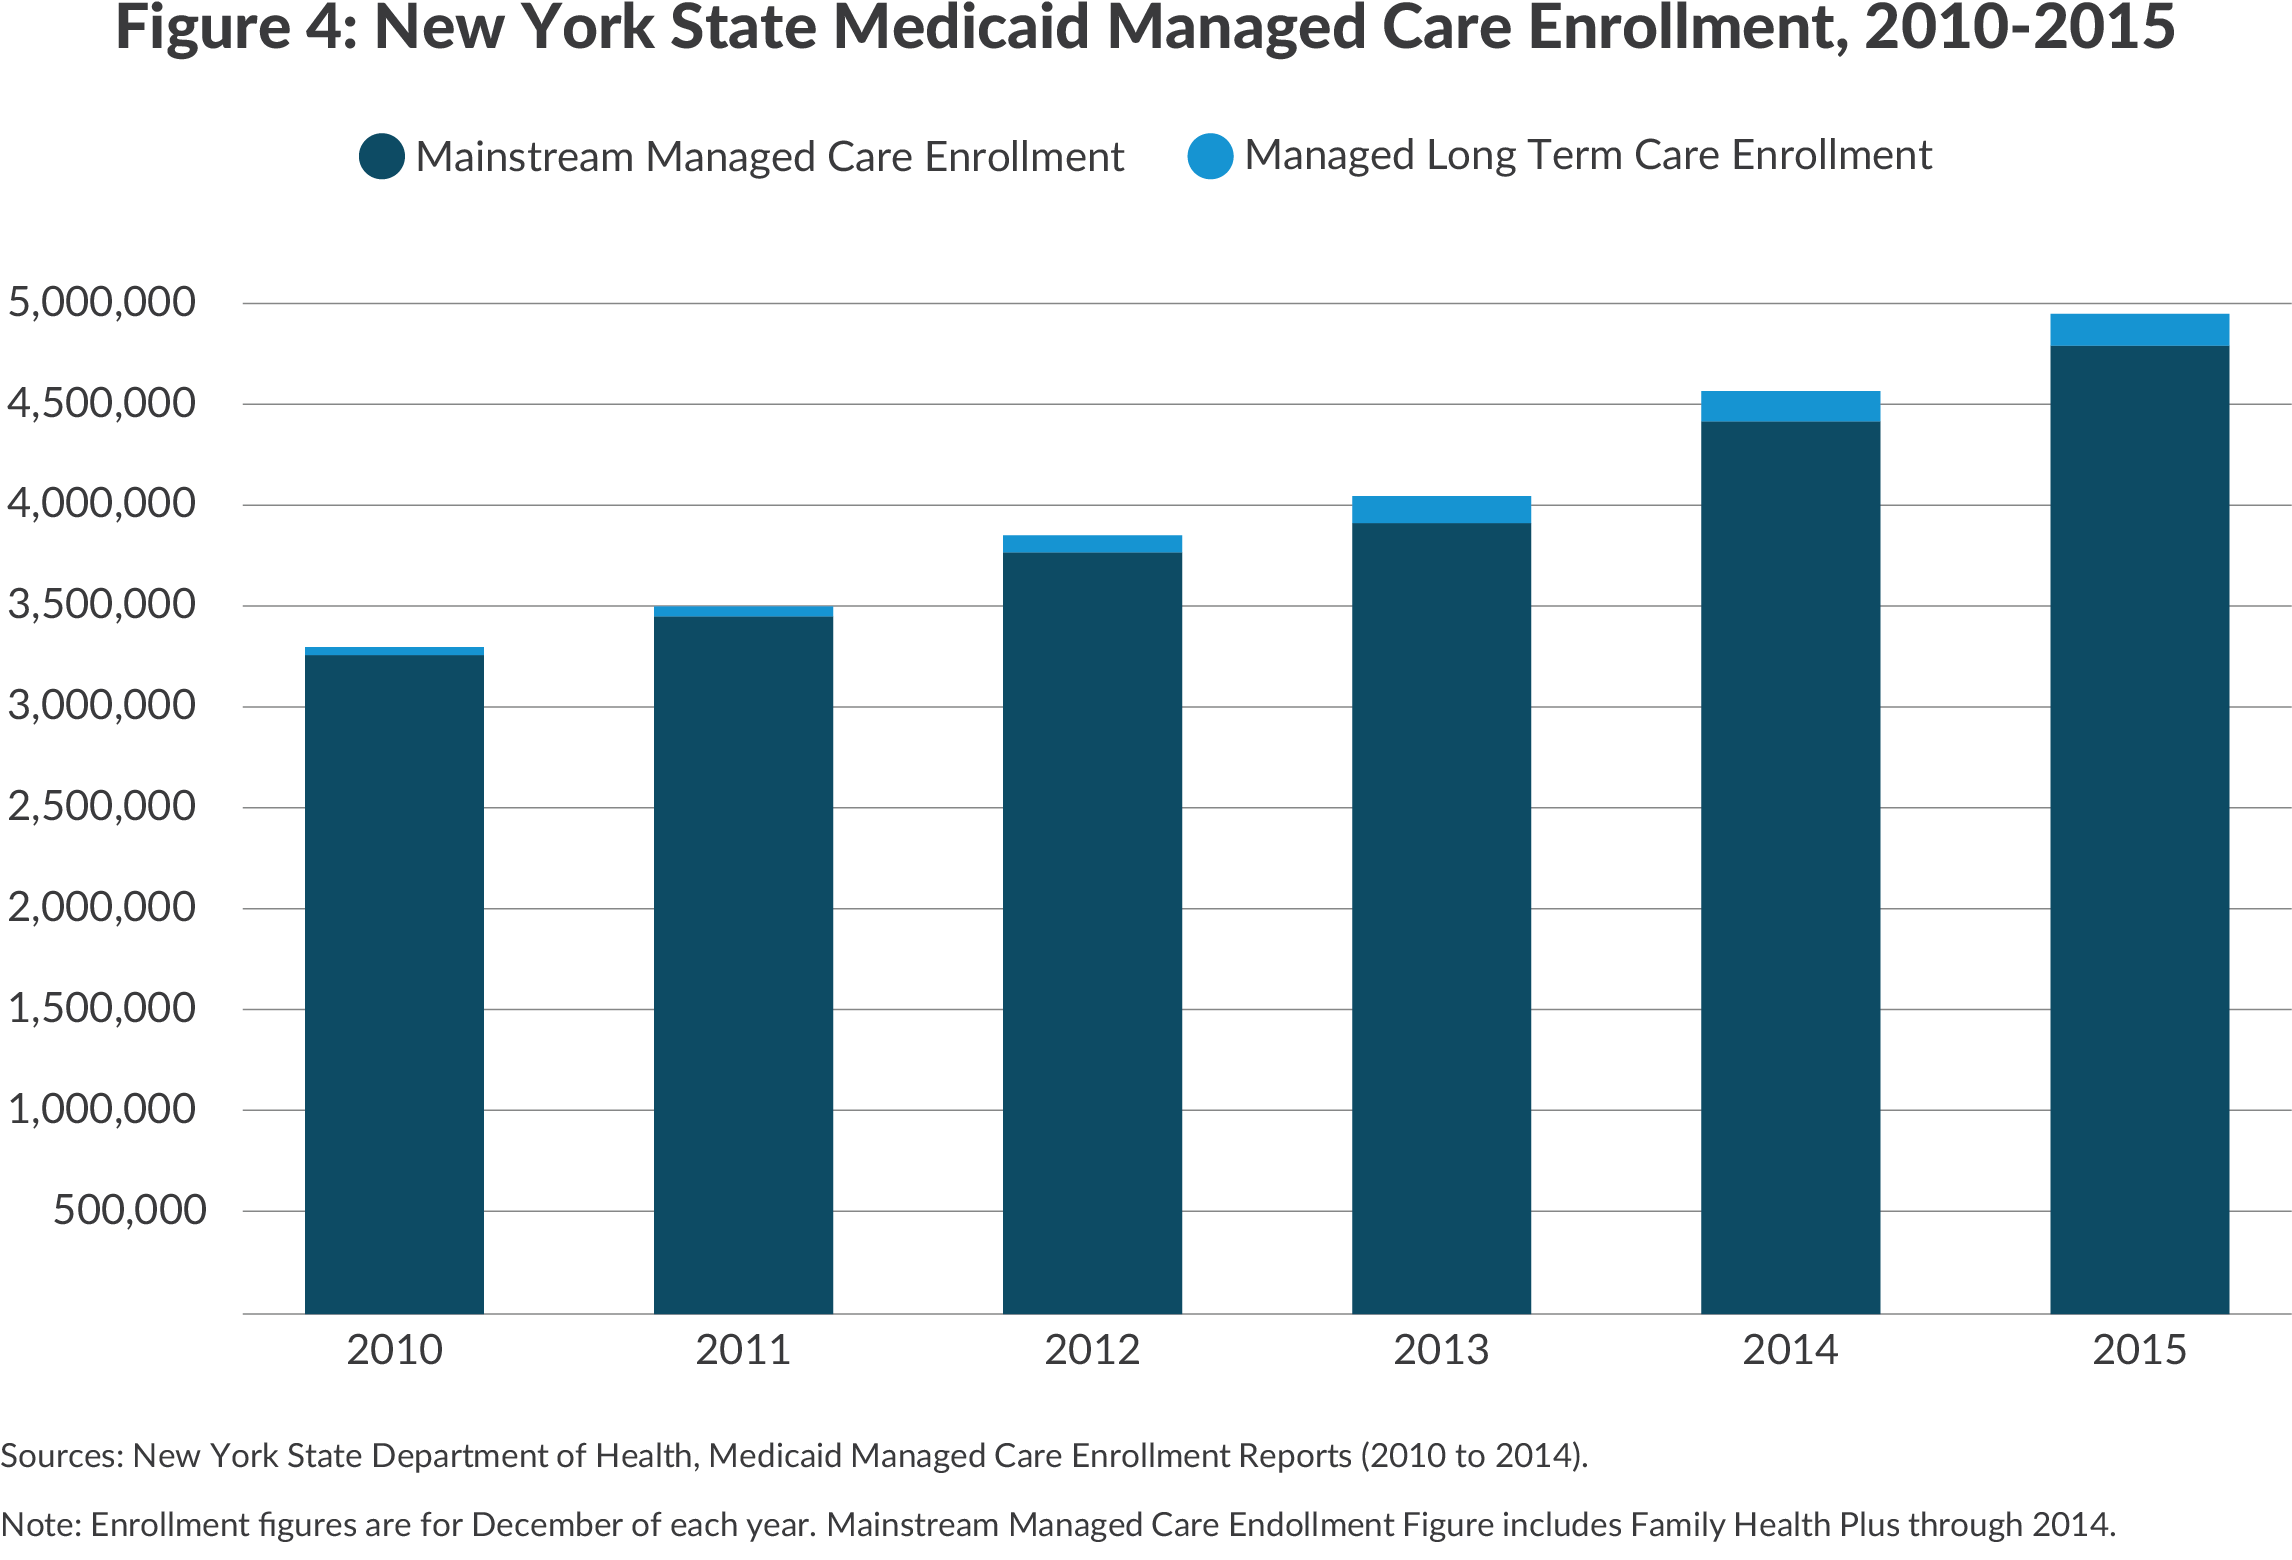 NY Medicaid managed care enrollment, 2010-2015